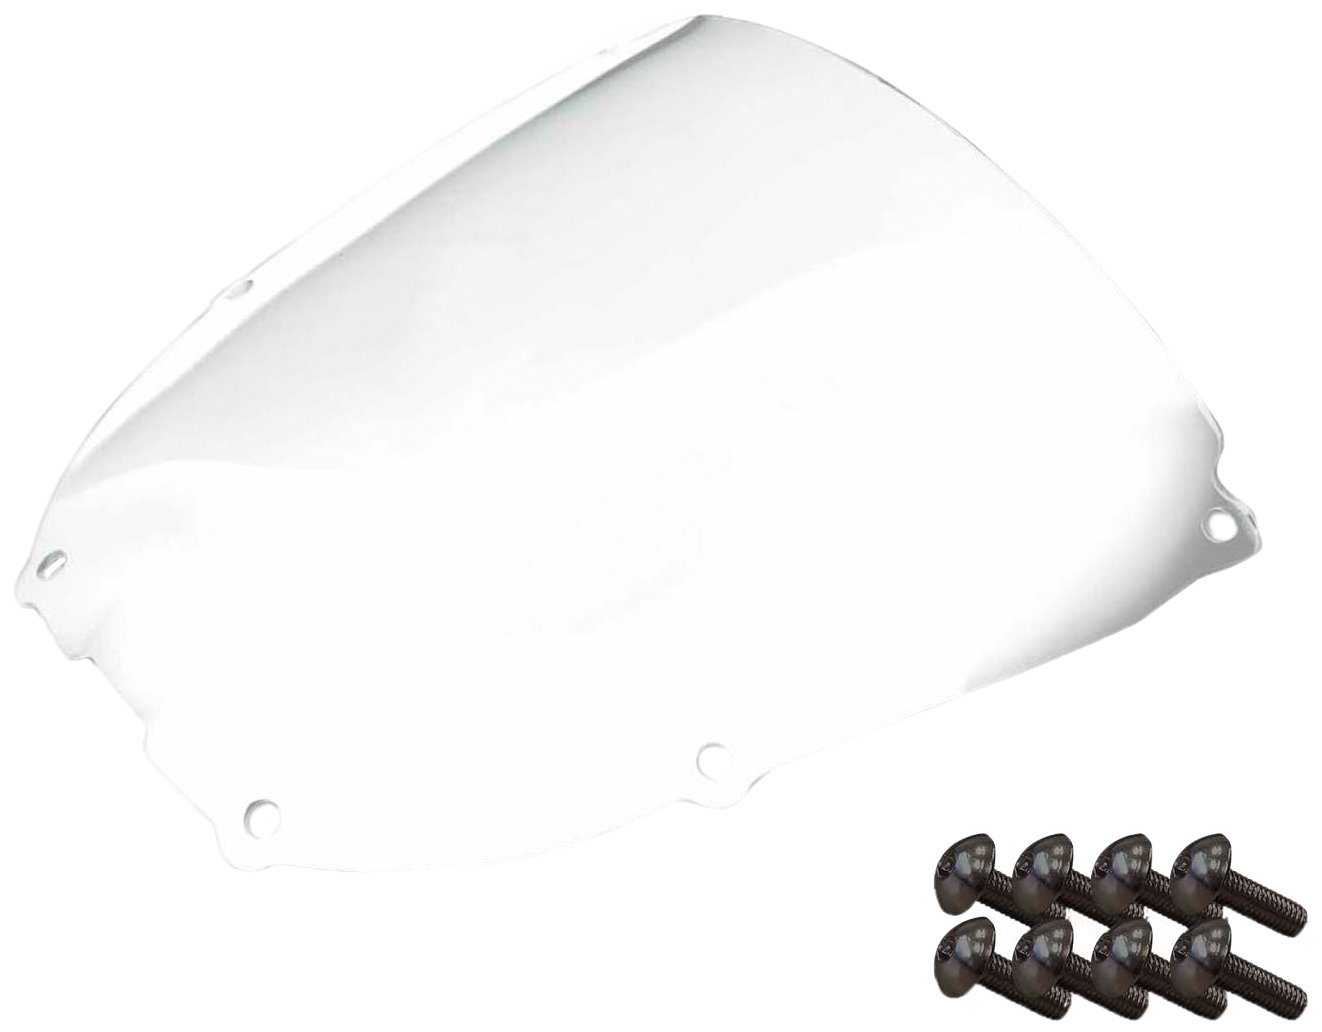 Sportbike Windscreens ADHW-107C Clear Windscreen (Honda Rc51 (01-06) with Silver Screw Kit), 2 Pack